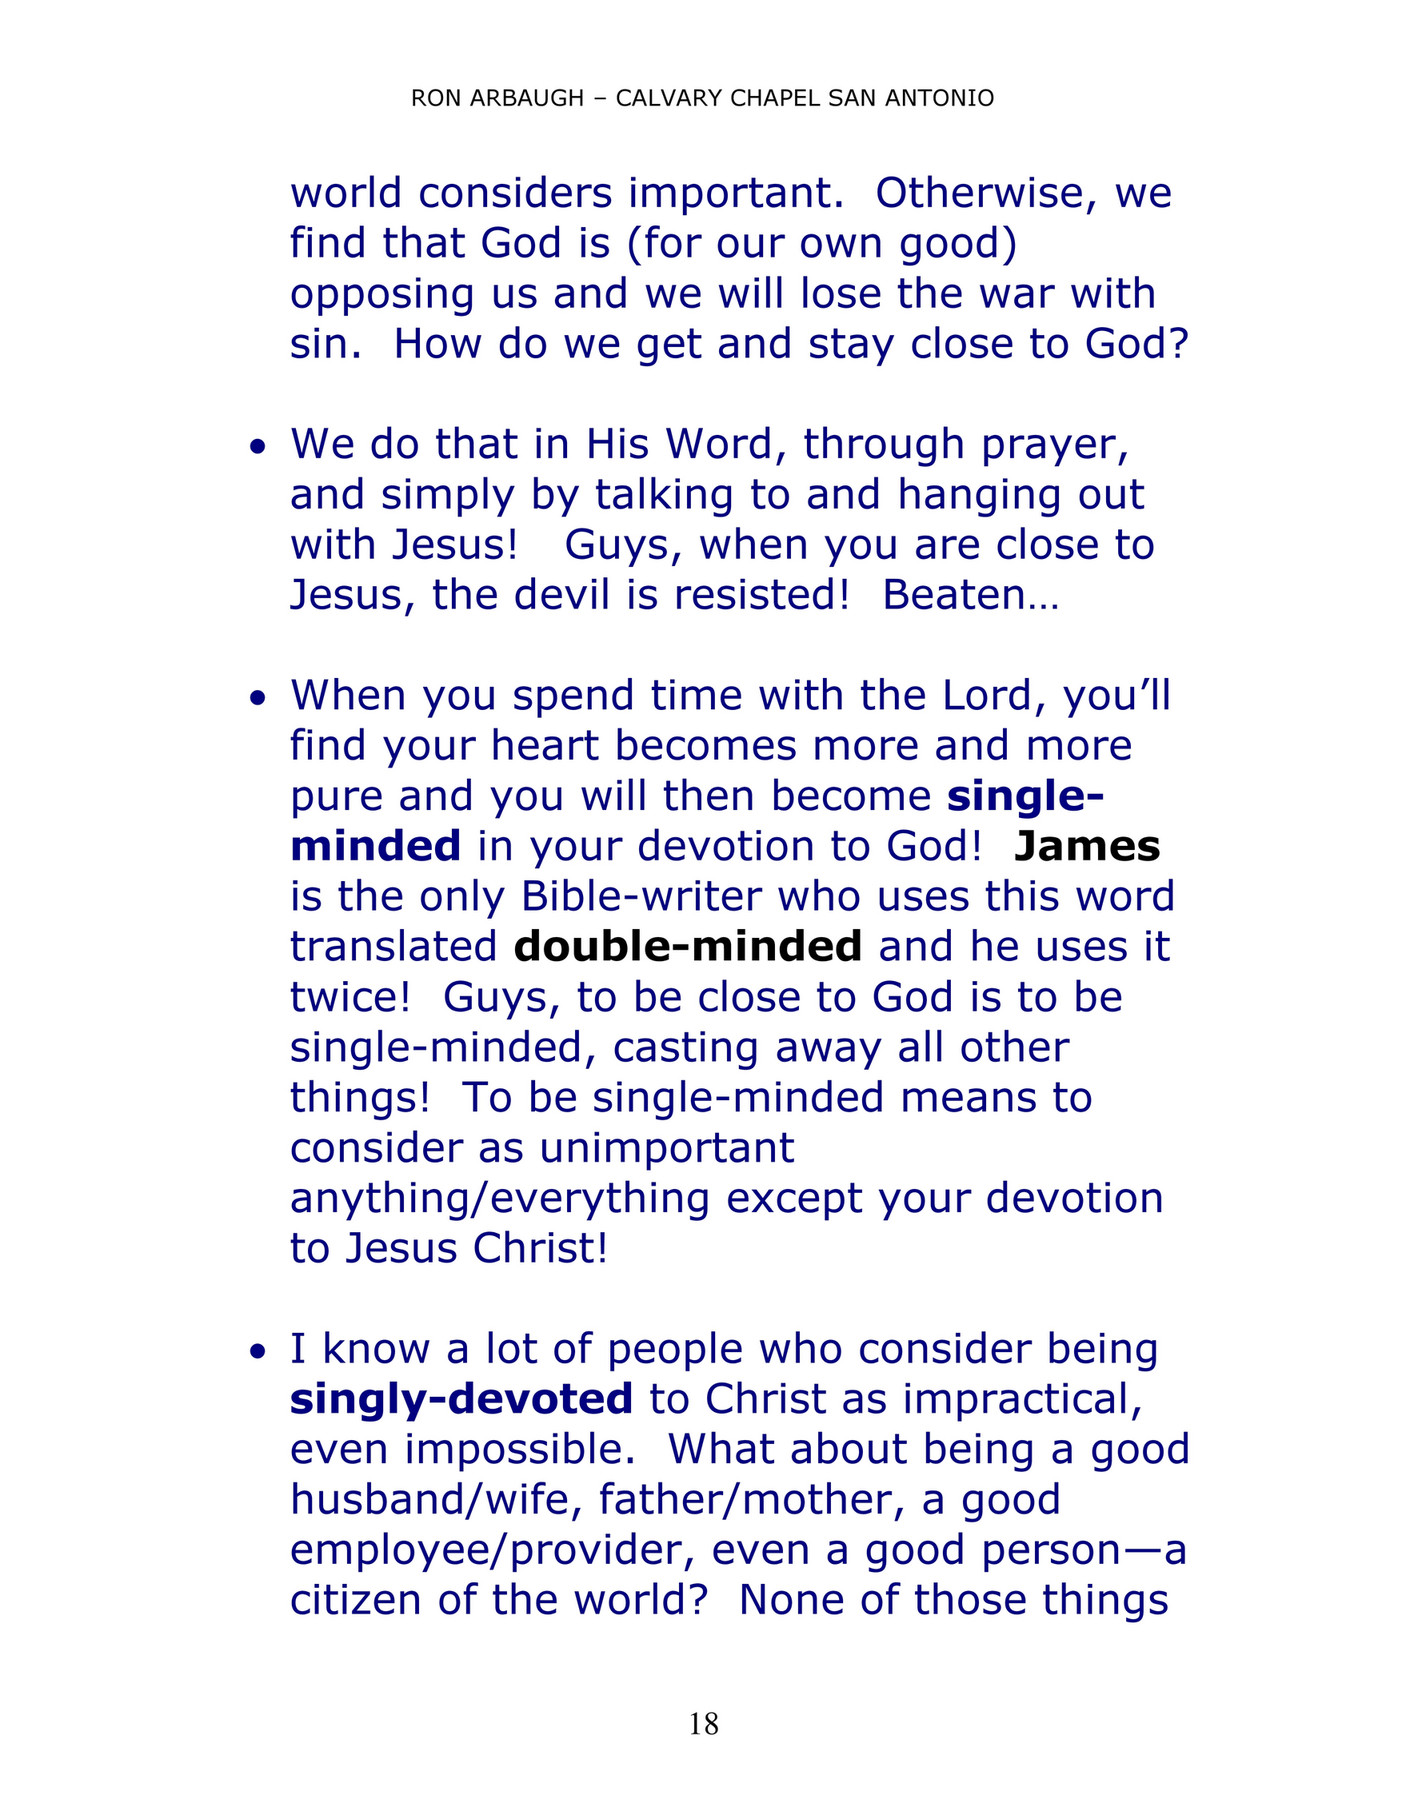 calvary chapel of san antonio james4 page 18 created what about being a good husband wife father mother a good employee provider even a good person a citizen of the world none of those things